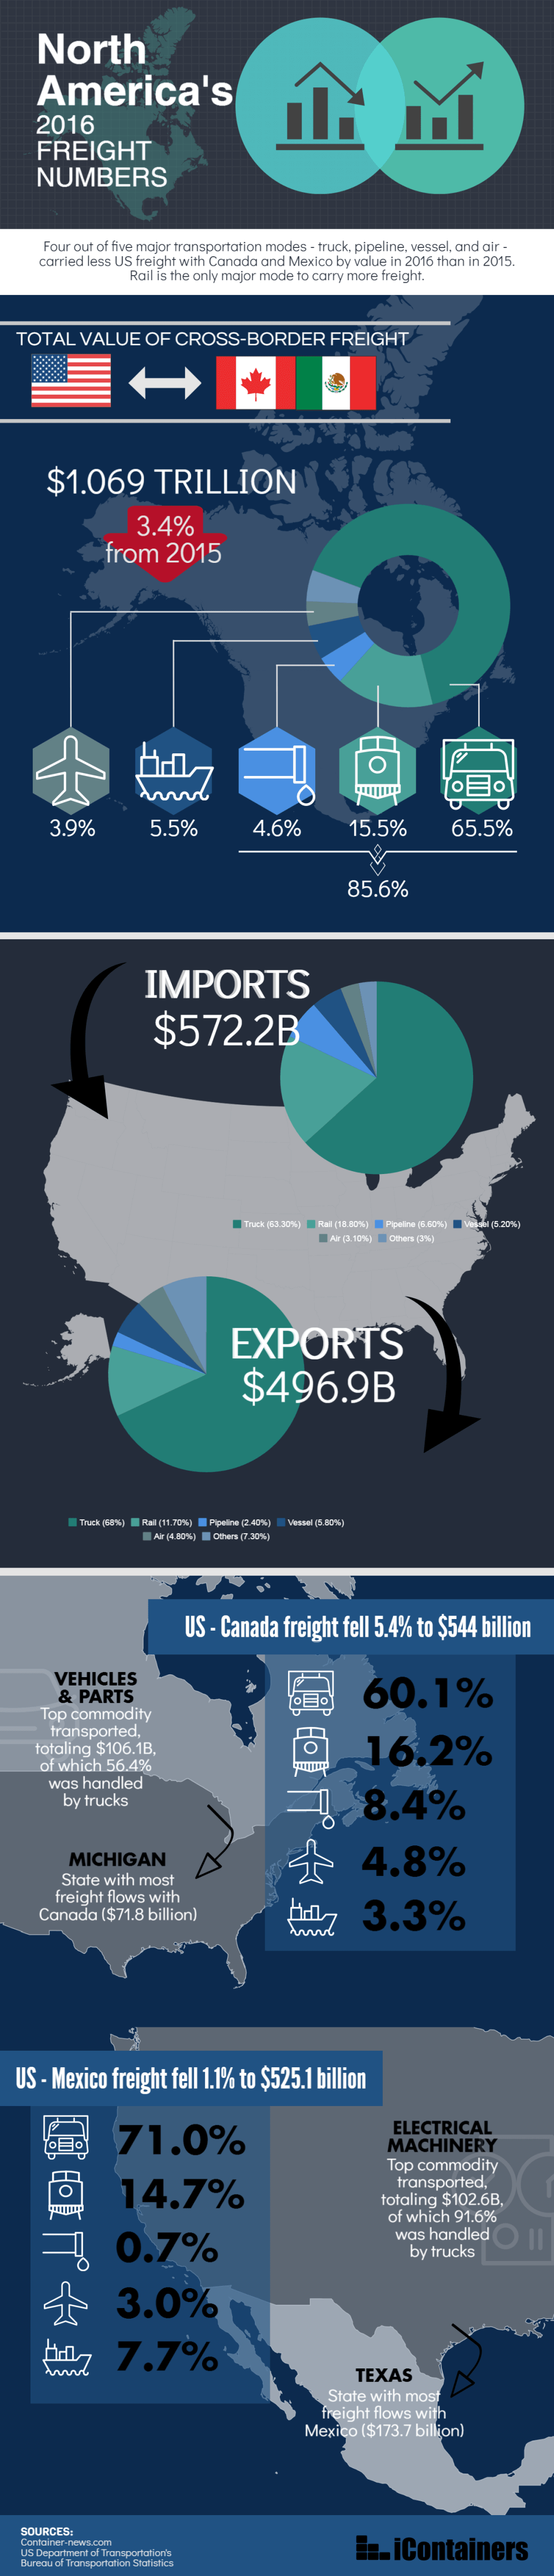 north america's freight numbers